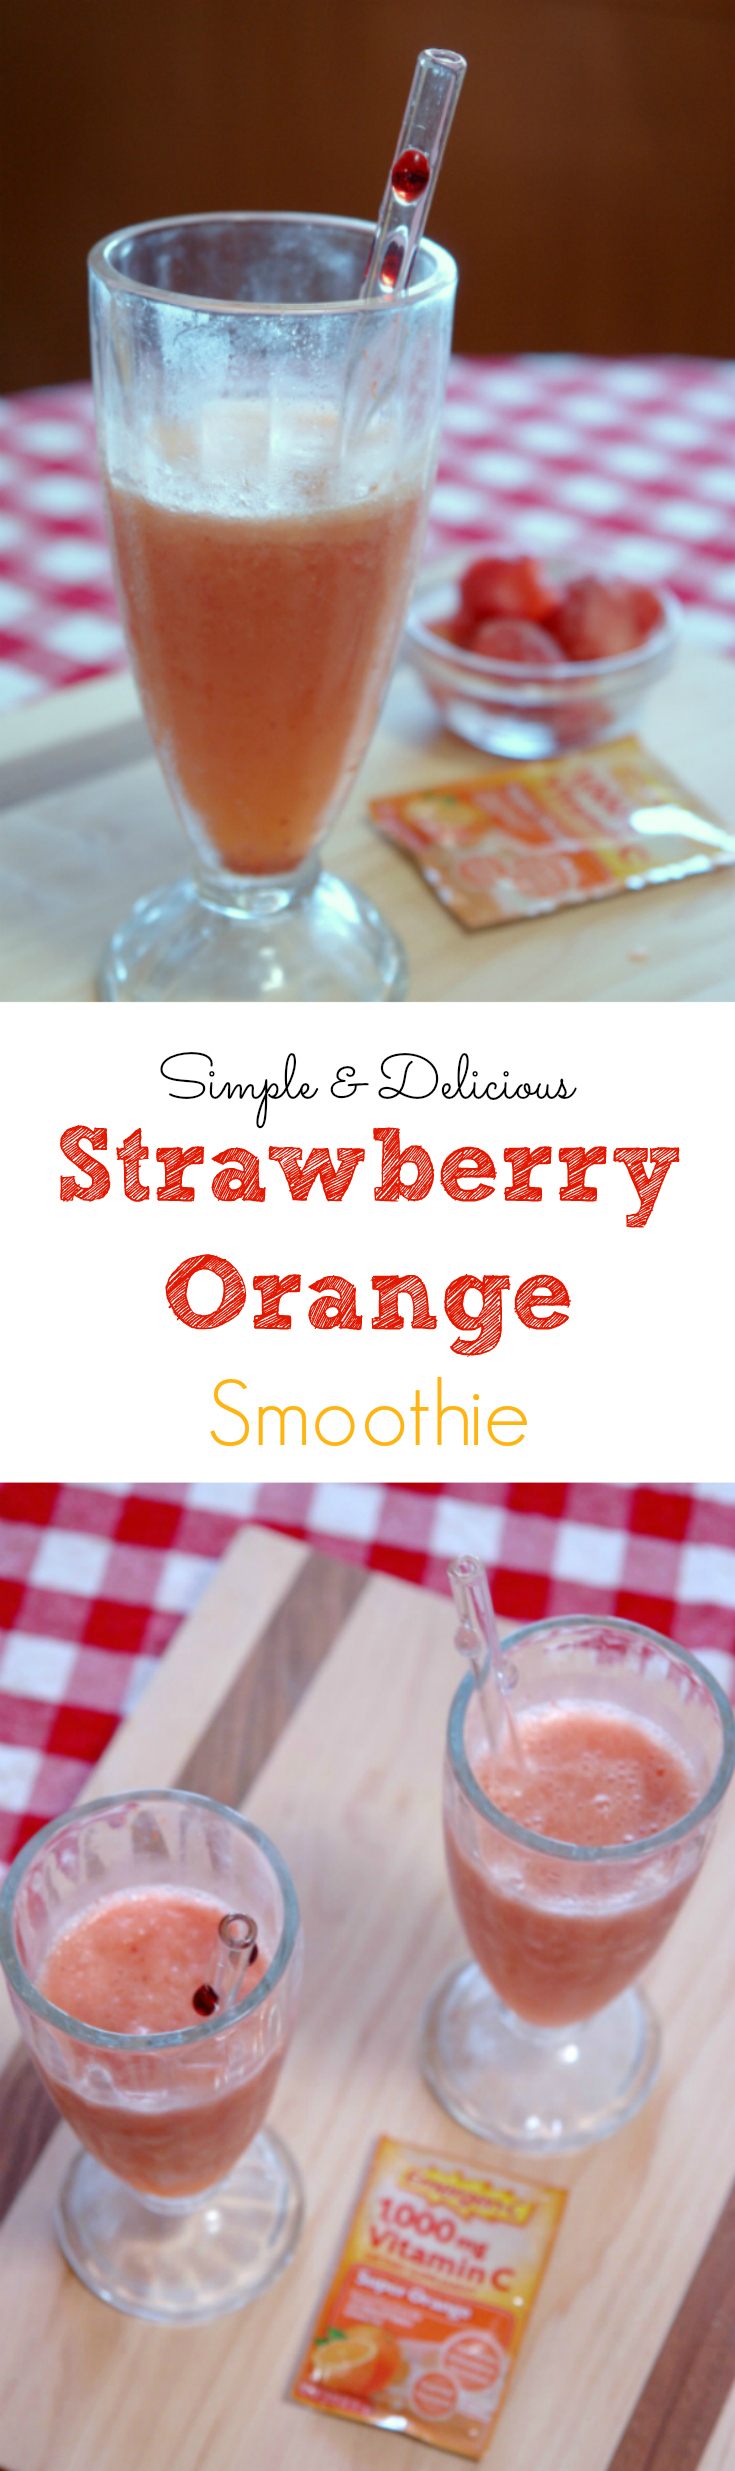 This Strawberry Orange Smoothie is so easy to make and delicious! It's also packed with vitamins because it uses Emergen-C. #shop #HowDoYouEmergenC #ad